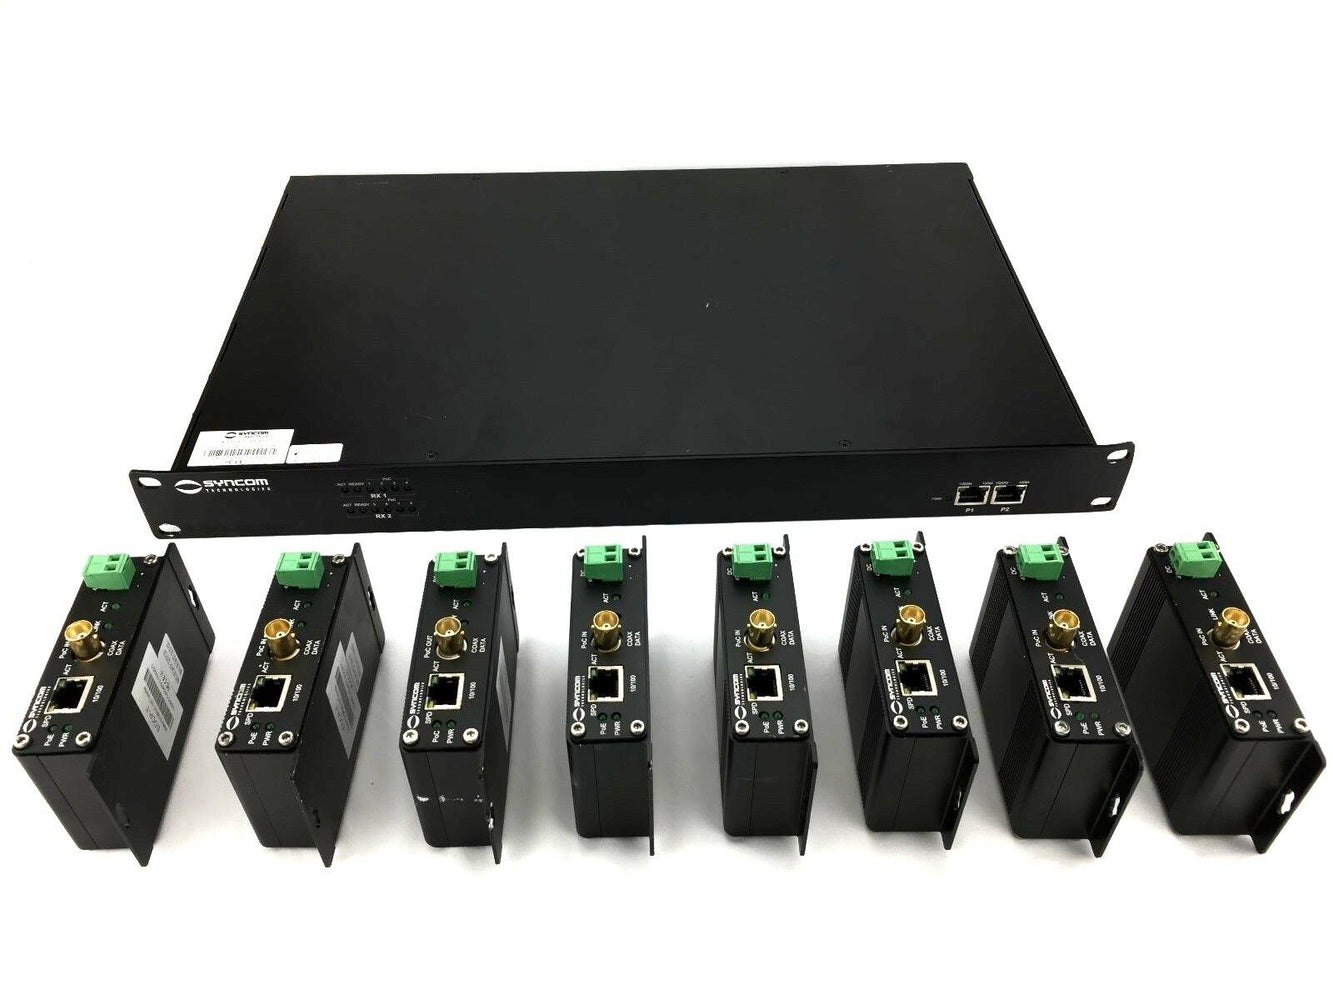 Upgrade Analog Security Cameras To IP Conversion Kit Ethernet Over Coax Plus POE